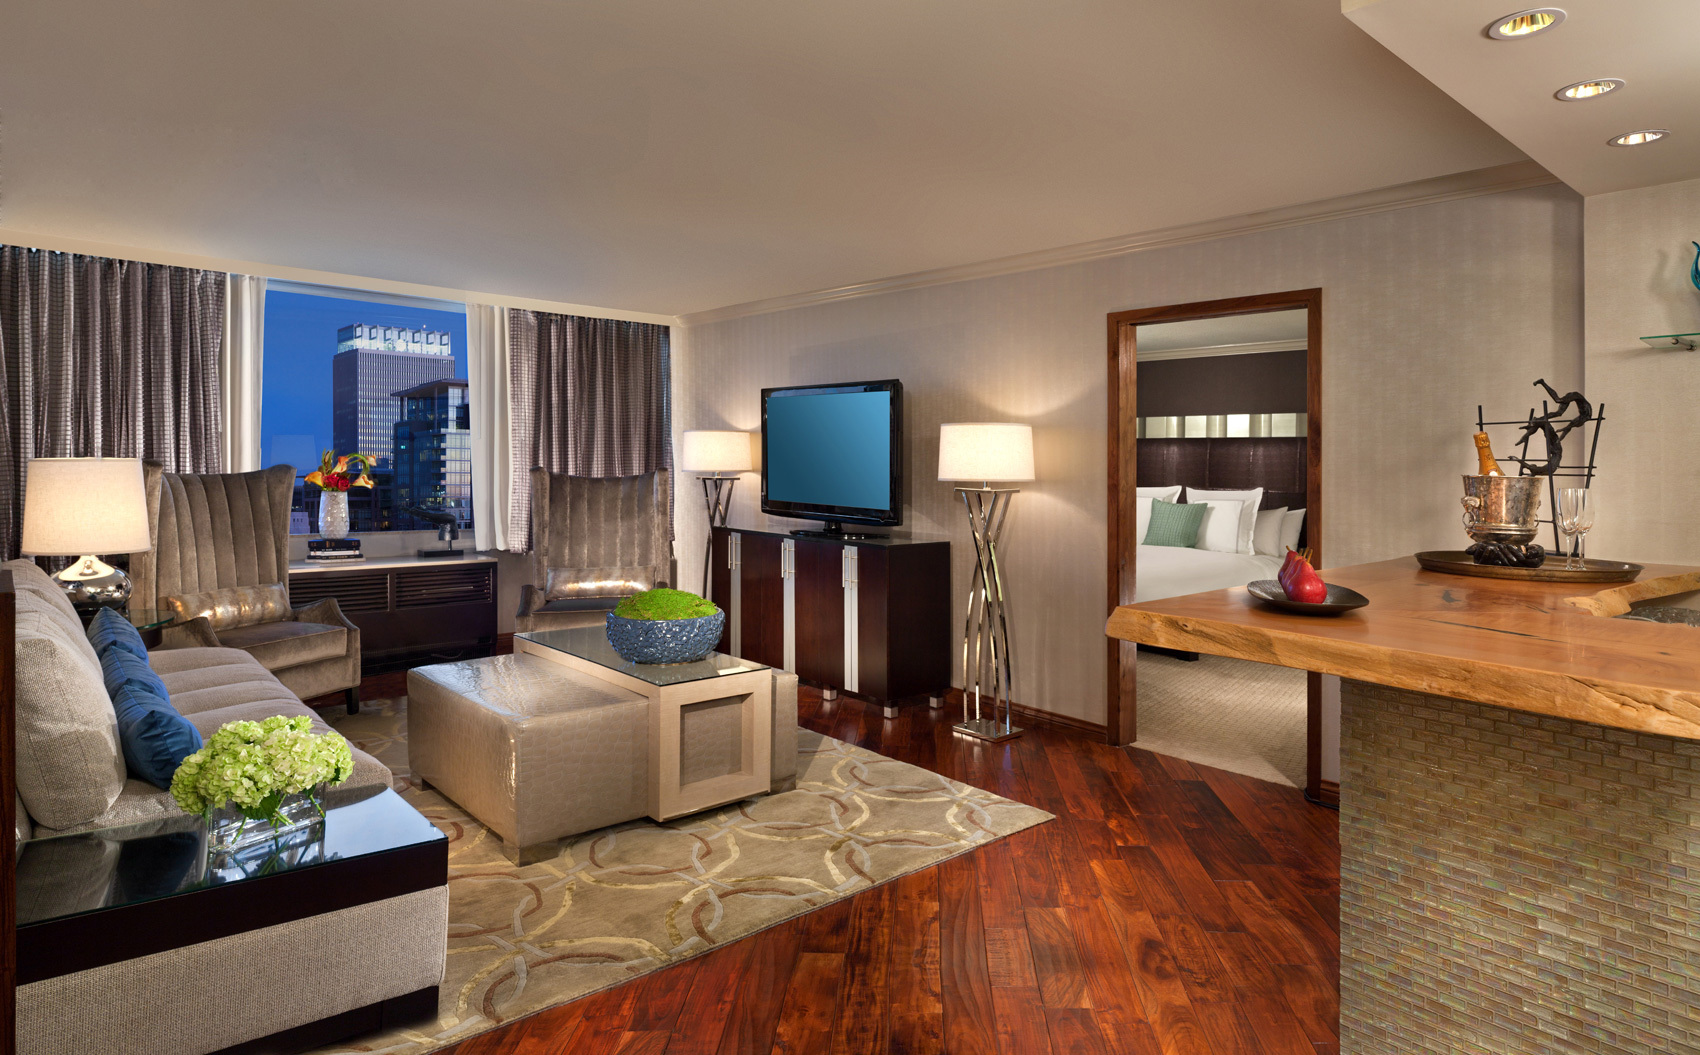 Lwh Hotels Offers Good Nights Specials At Distinct Boutique In Exciting Locations Around The World Business Wire